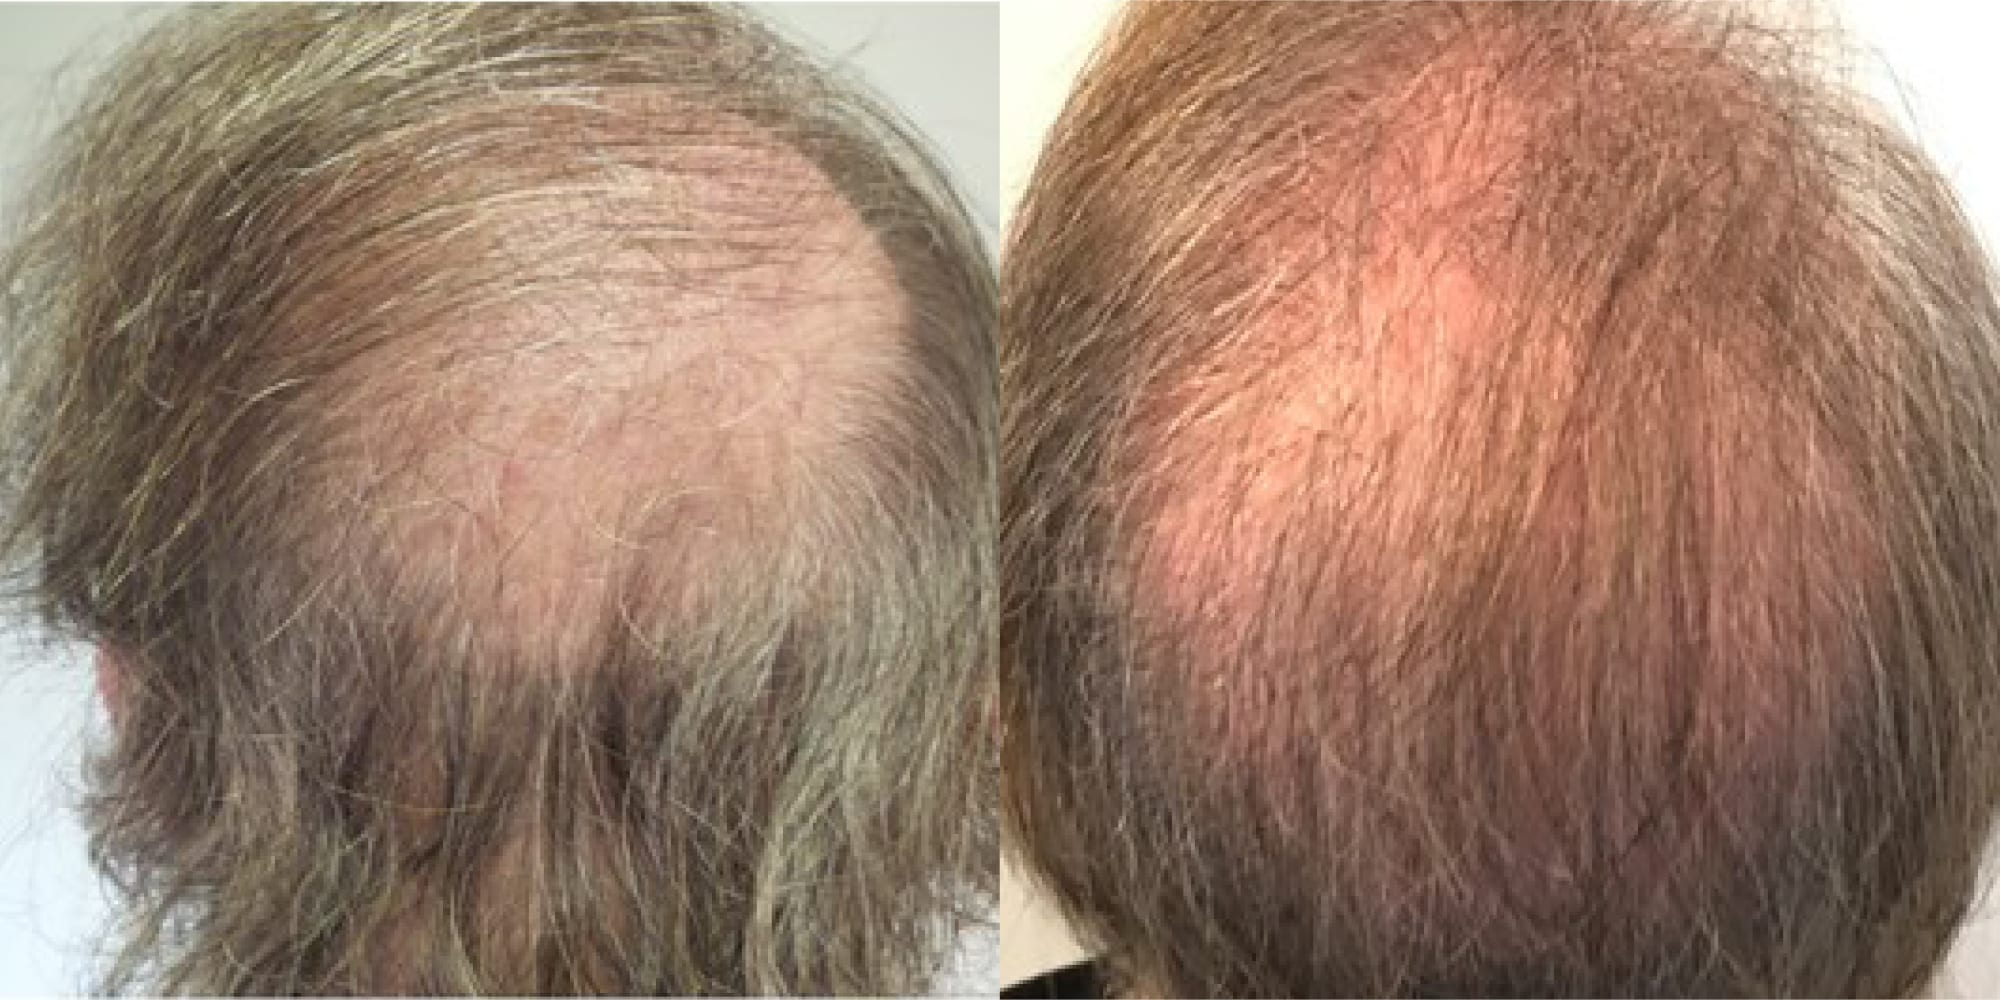 hair restoration before and after hughes center